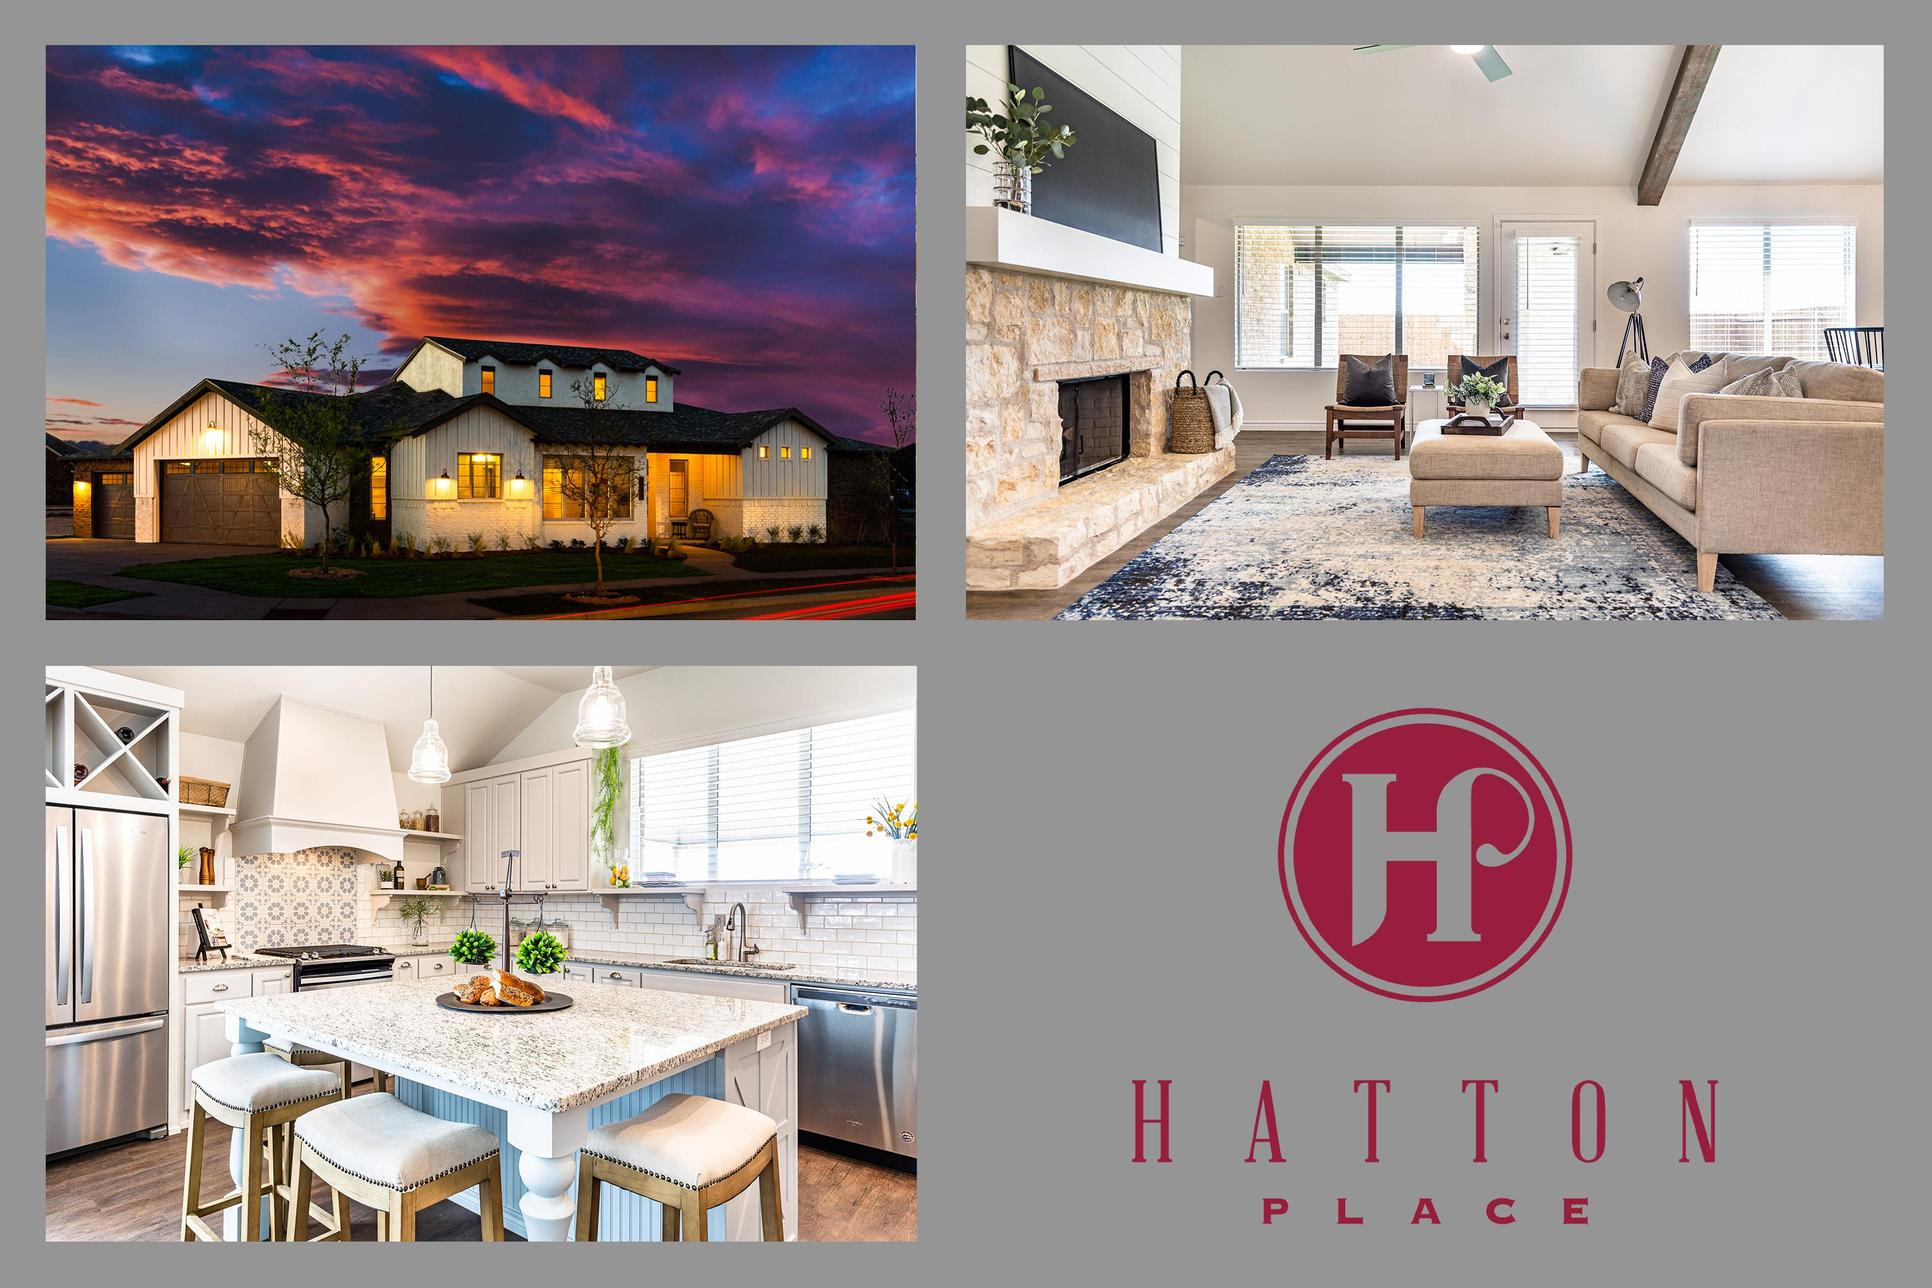 Hatton Place:From the $260's